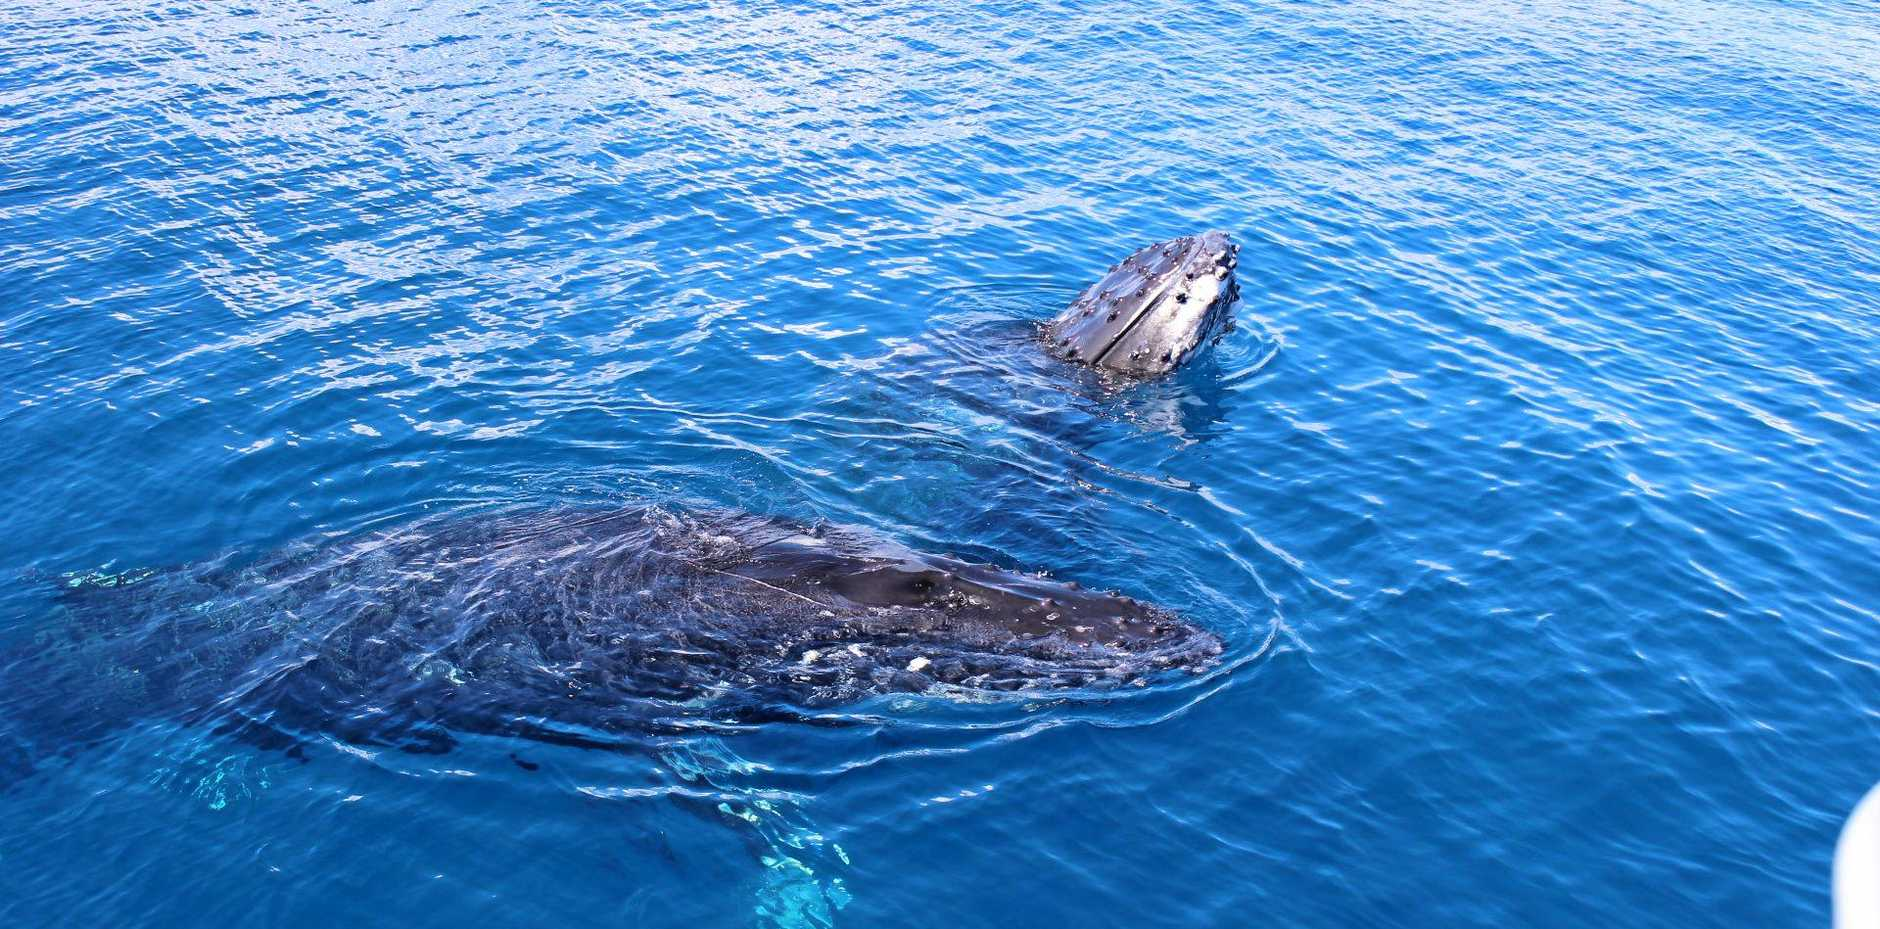 Juvenile whales are usually the most curious and come right up to swimmers.